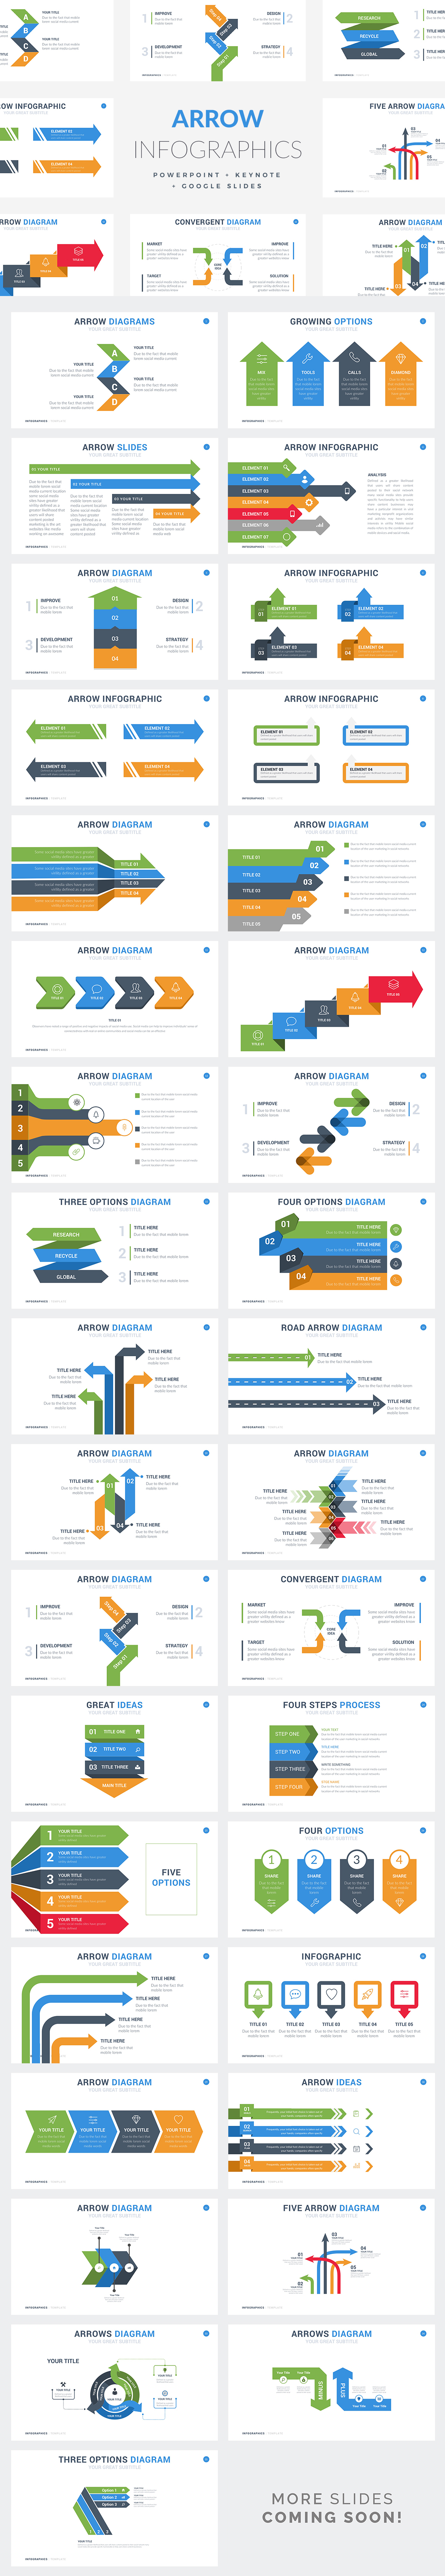 Arrow Inforgraphic Templates - PowerPoint Templates - Keynote Themes - Google Slides.psd